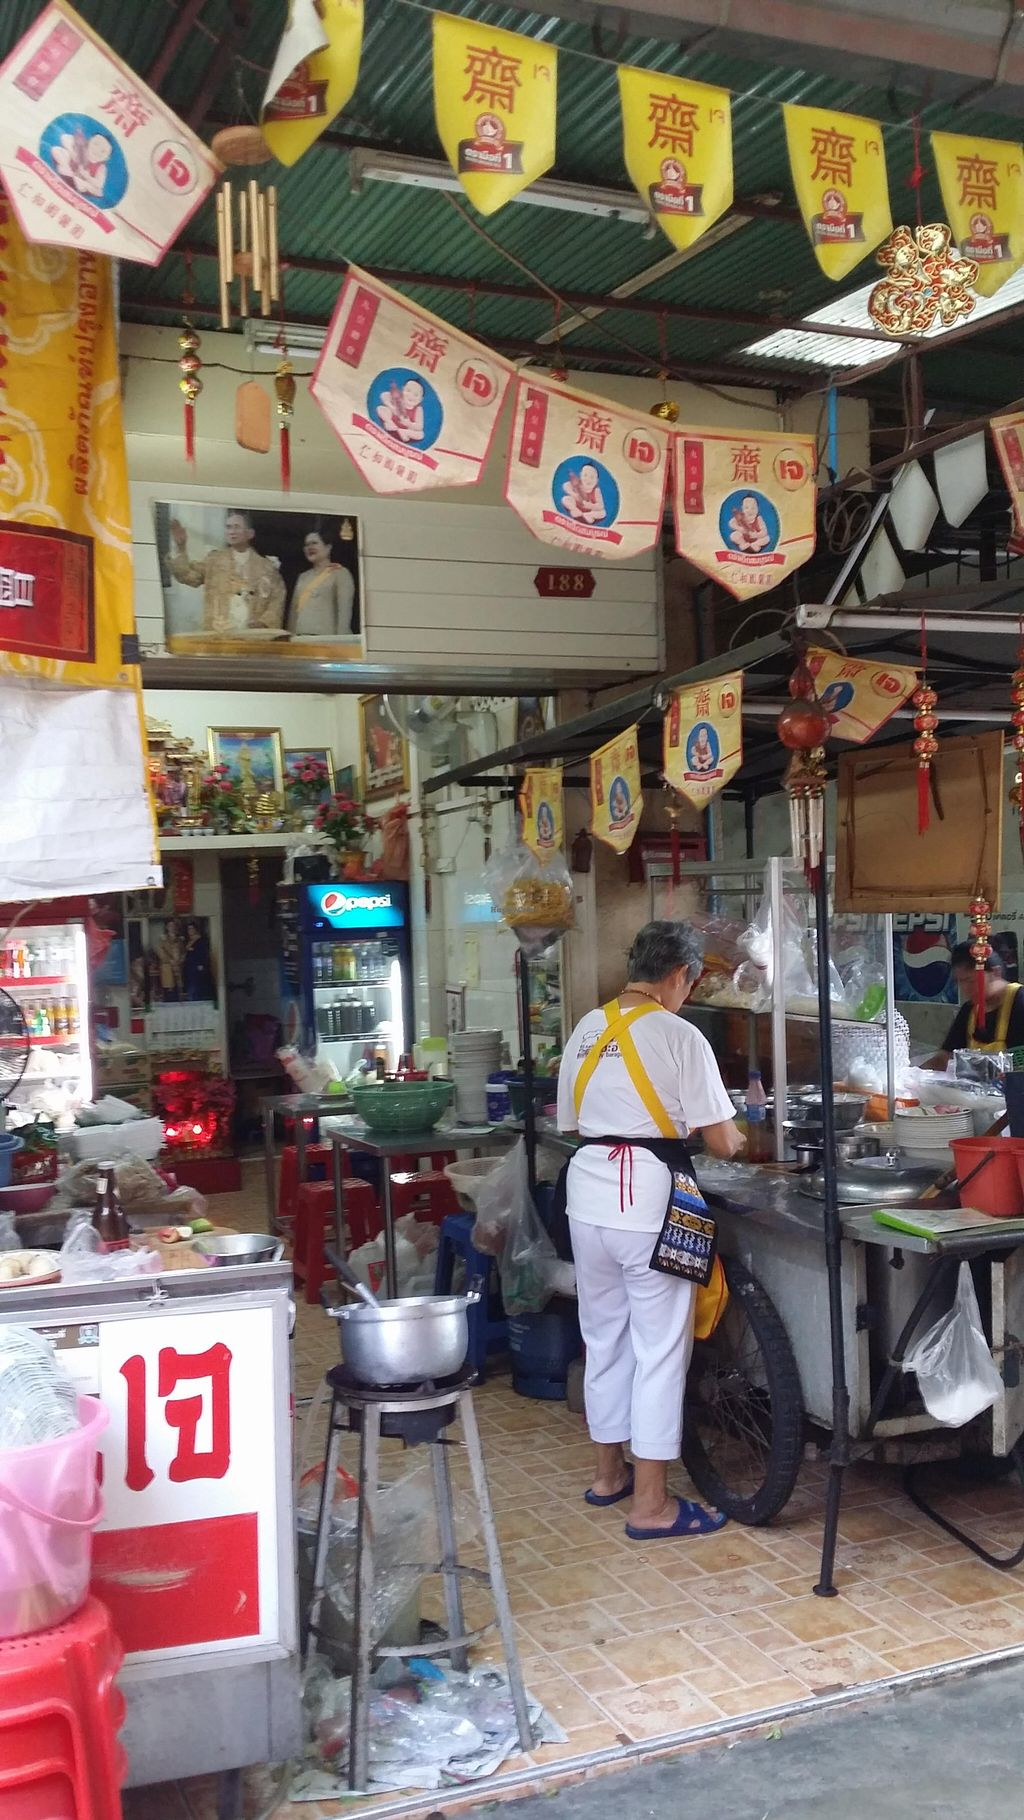 """Photo of Lee Jae Veg  by <a href=""""/members/profile/yehadut"""">yehadut</a> <br/>What the place looks like <br/> October 6, 2015  - <a href='/contact/abuse/image/38192/120413'>Report</a>"""